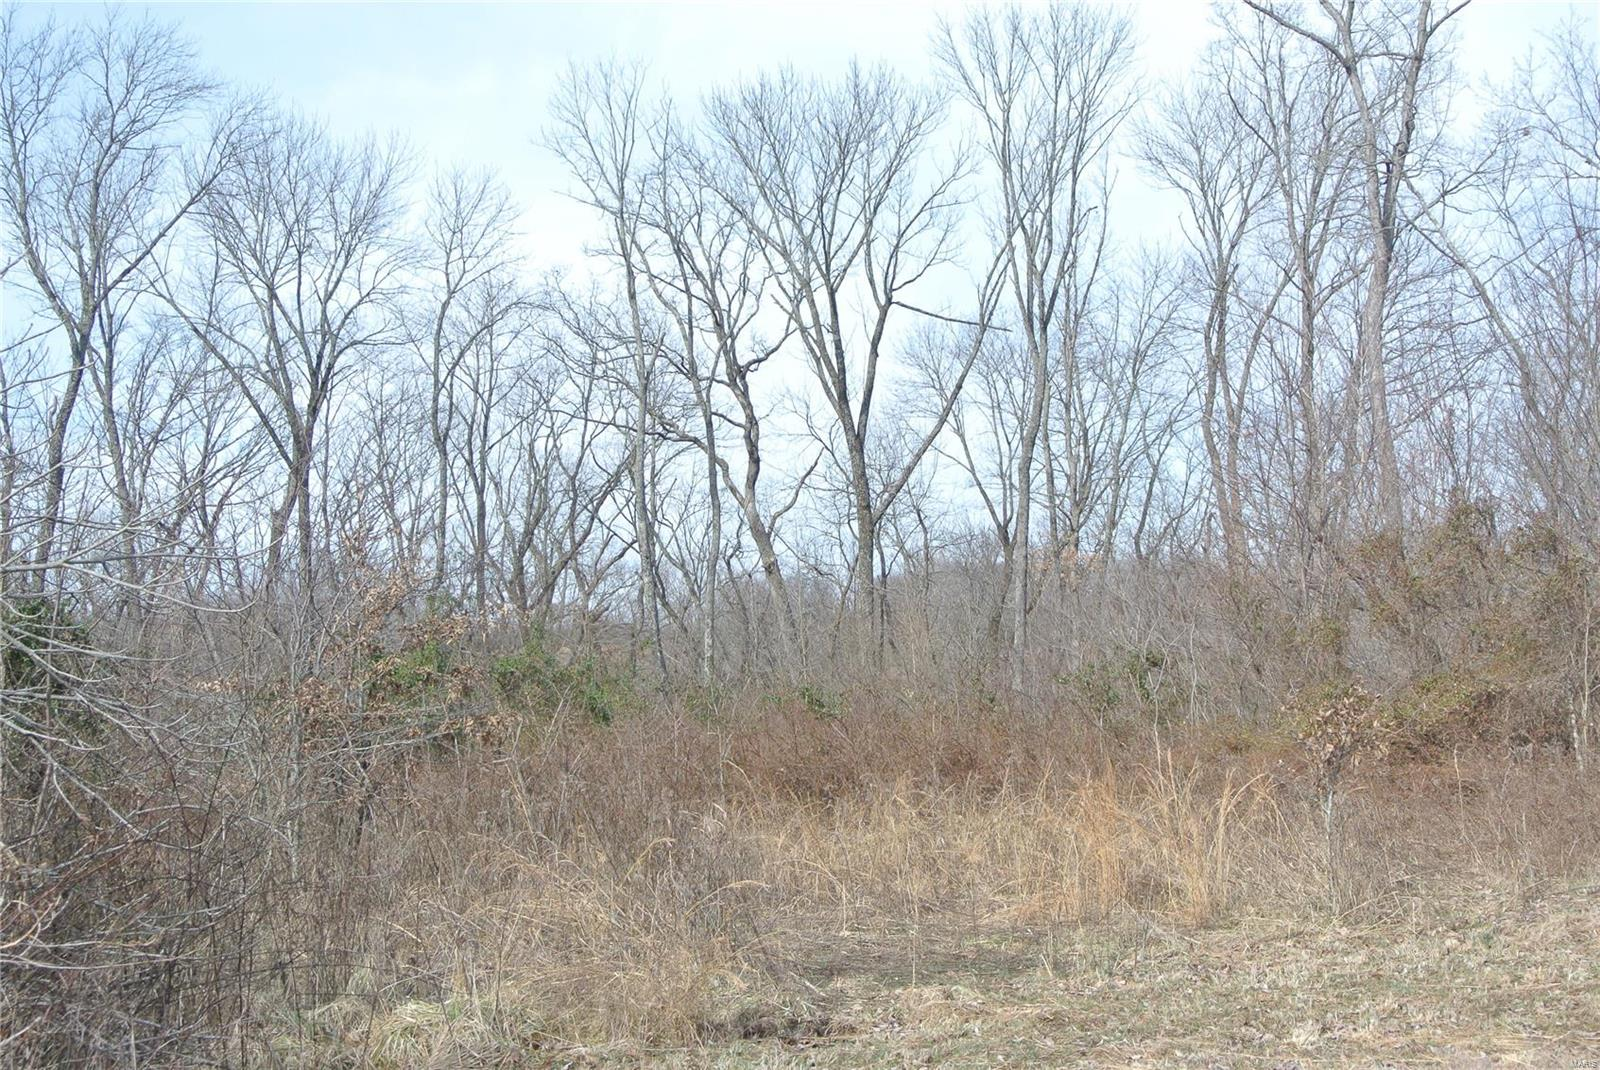 0 lot 34A Tyler Branch Road Property Photo 1